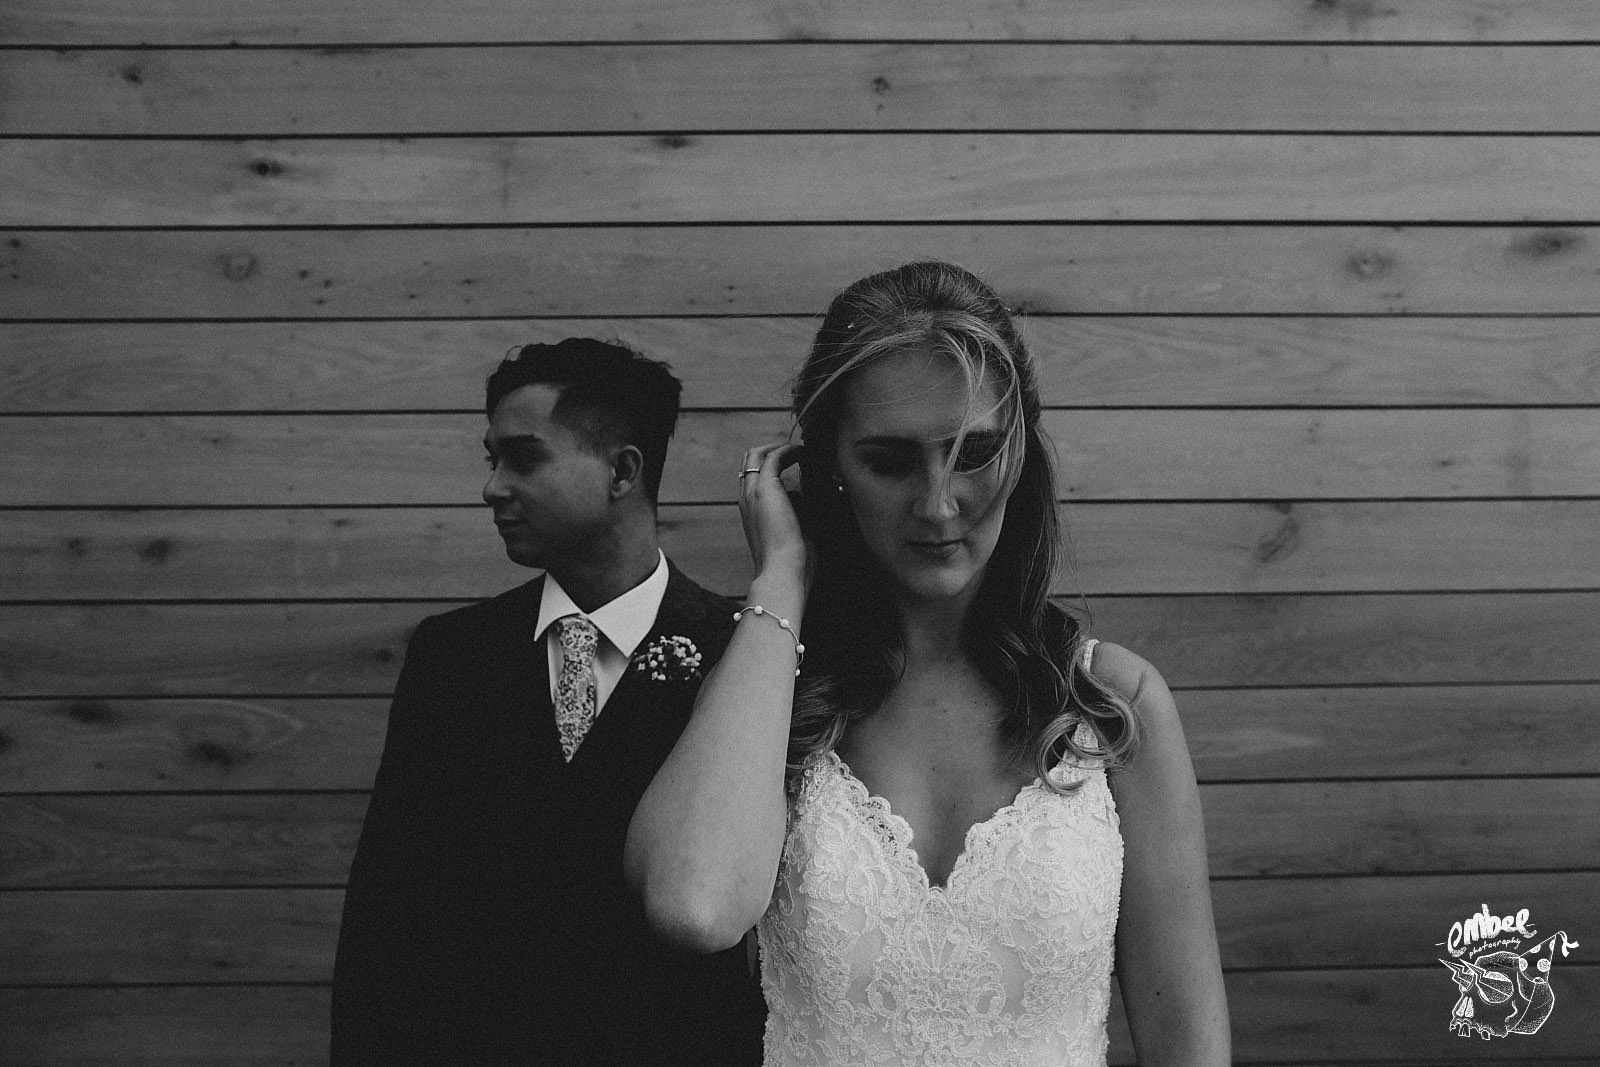 cheshire wedding photographer captures bride and groom at pryors hayes